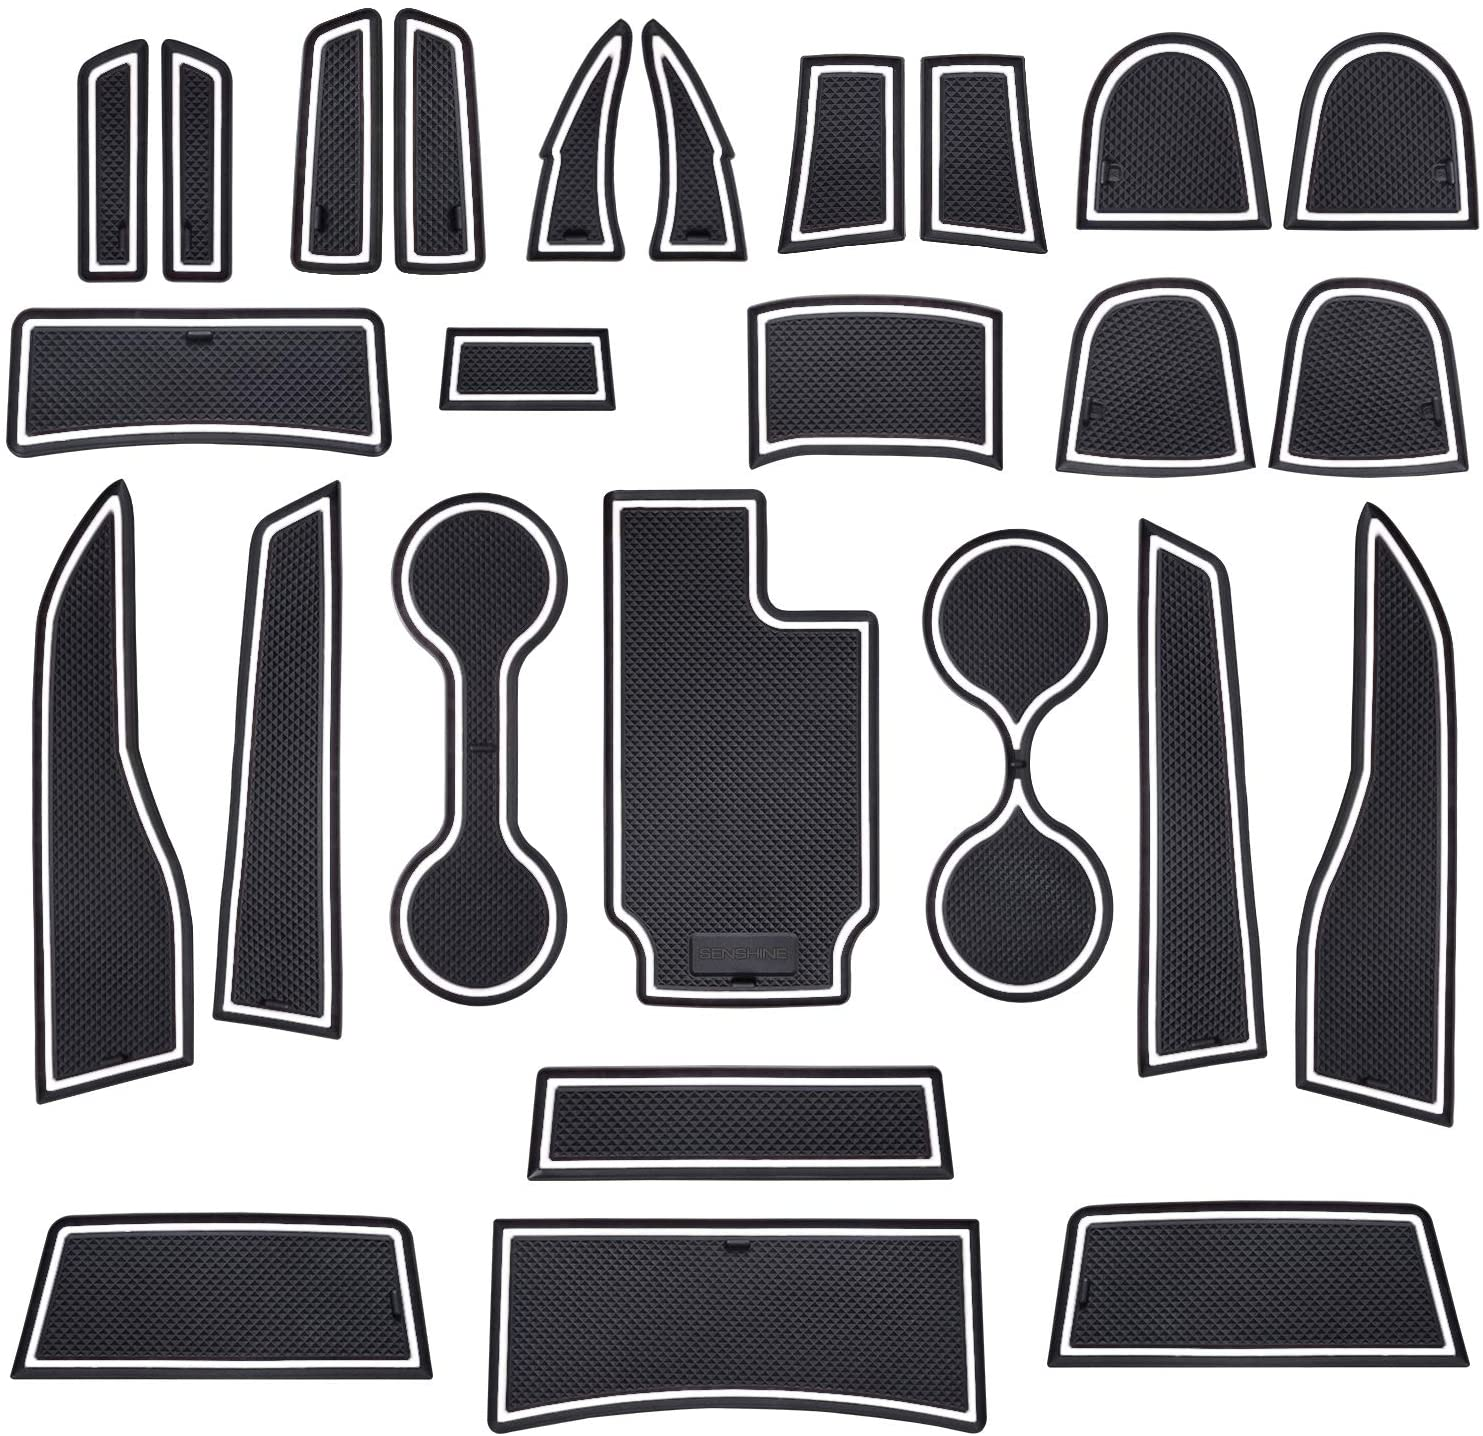 SENSHINE for Chevy Colorado and GMC Canyon Accessories 2021 2020 2019 2018 2017 2016 2015 Custom Liner Interior Cup Holder Inserts, Center Console, Door Pocket Mats 26pc Set (White Trim, Crew Cab)